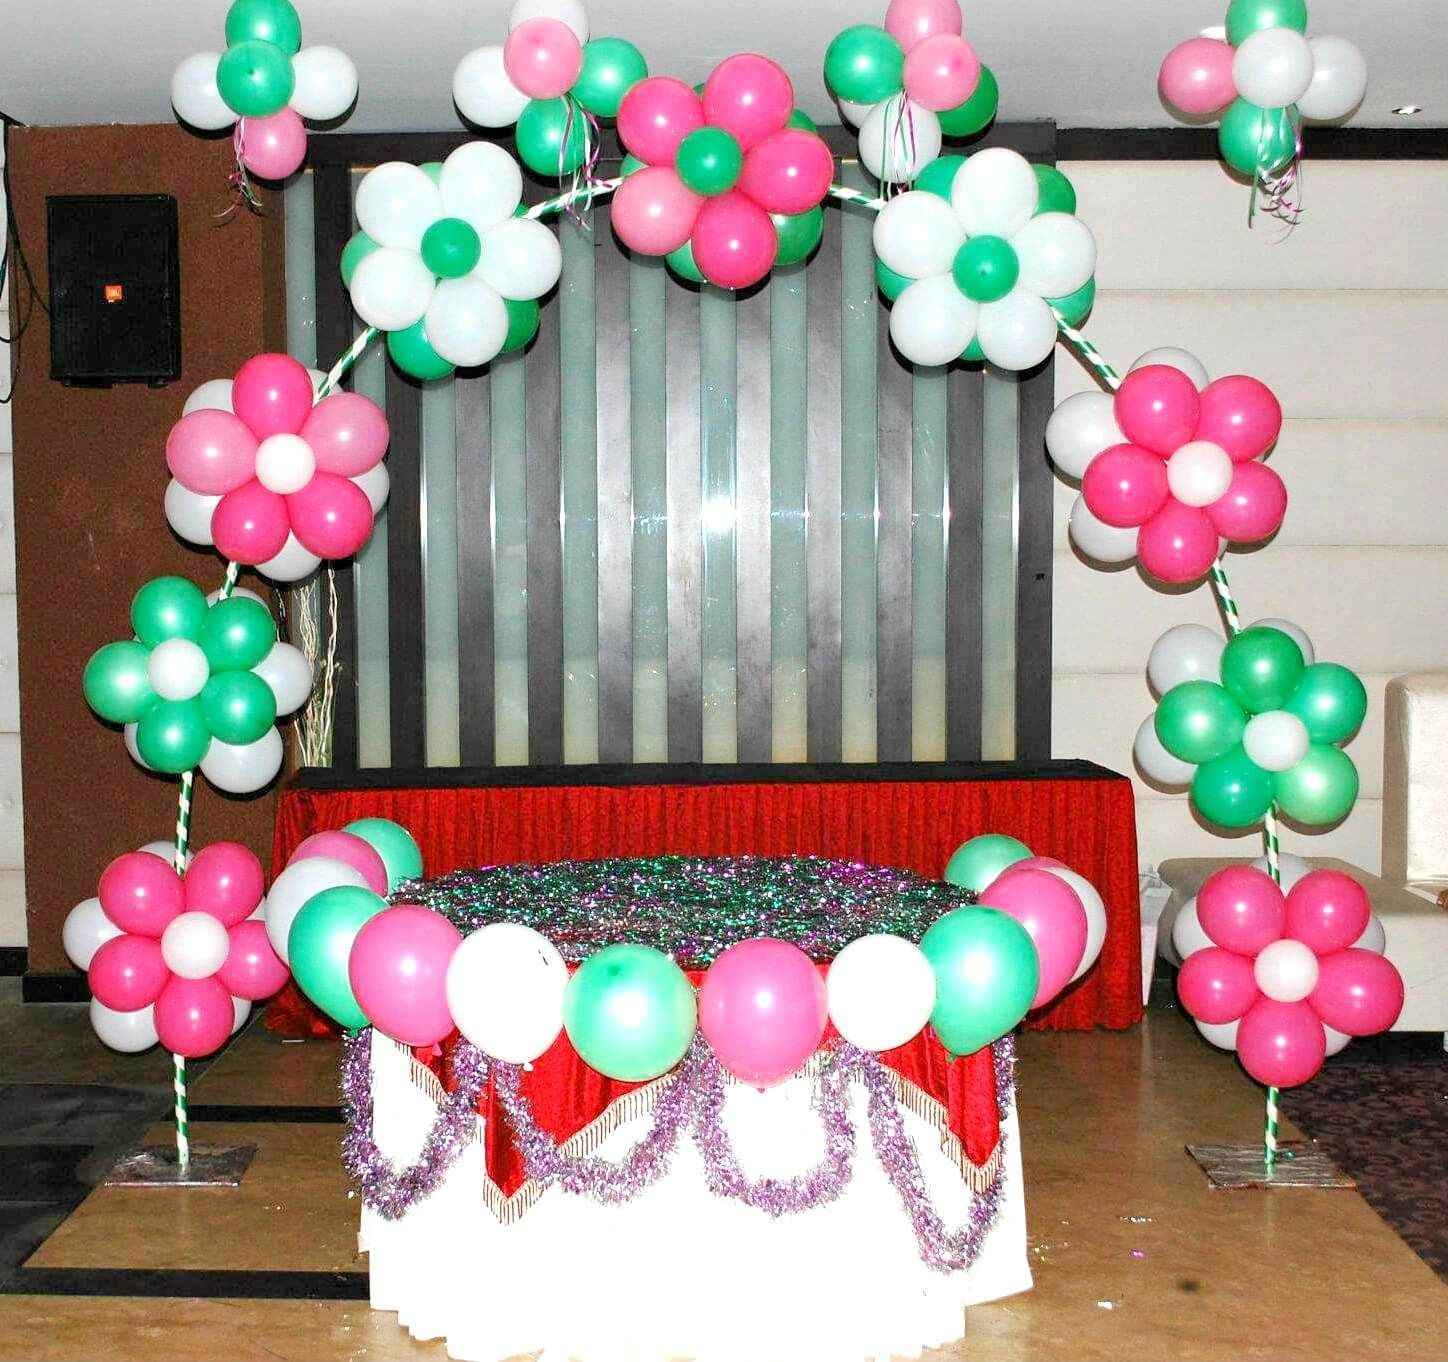 Balloon Decoration Adding A Personal Touch With Diy Ideas Birthday Balloon Decorations Diy Birthday Decorations Balloon Decorations Party